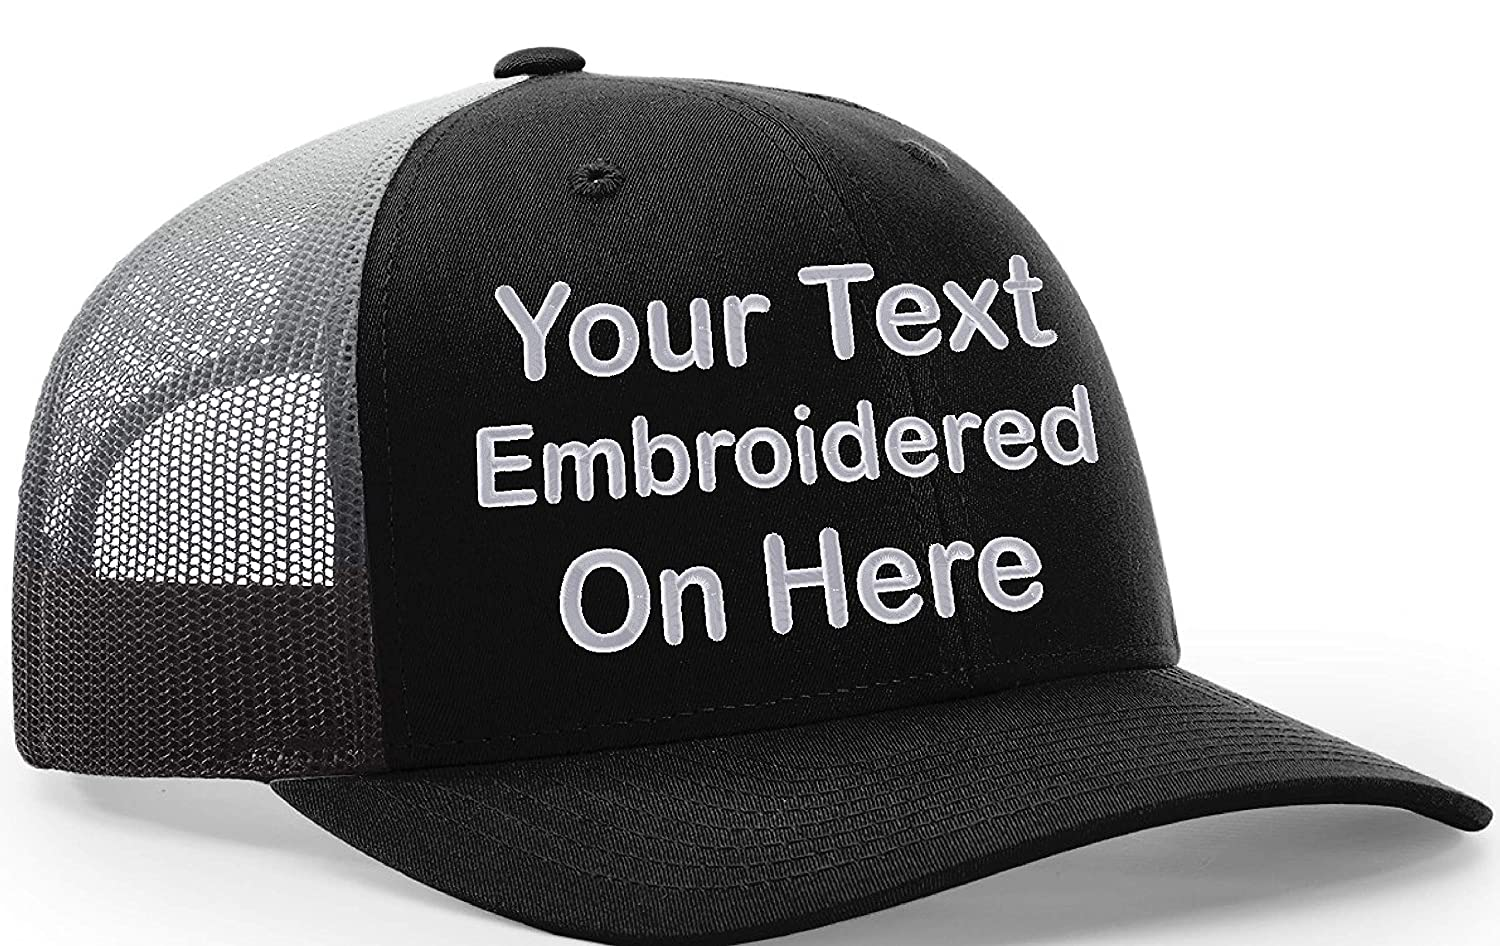 b5425be3b98e5 Amazon.com  Custom Richardson 112 Hat with Your Text Embroidered Trucker  Mesh Snapback Cap  Clothing